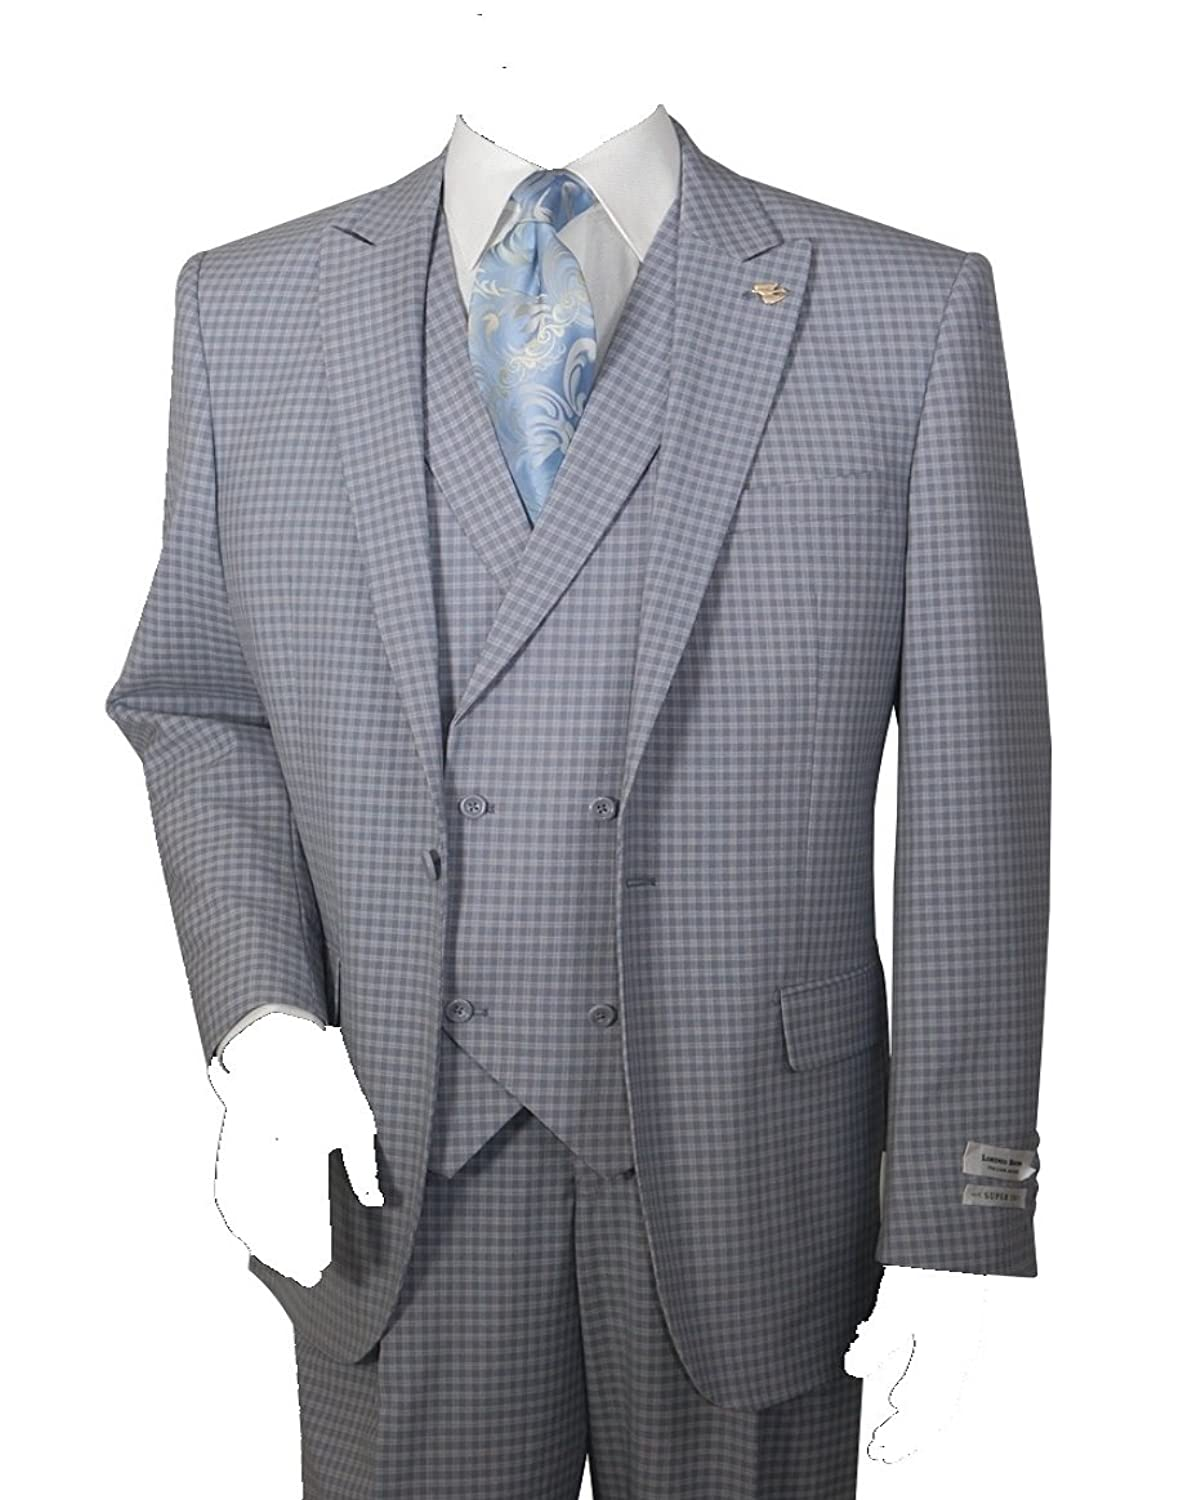 1900s Edwardian Men's Suits and Coats Mens 3 Piece Single Button Mini-Plaid Pattern Suit (Gray) $149.99 AT vintagedancer.com